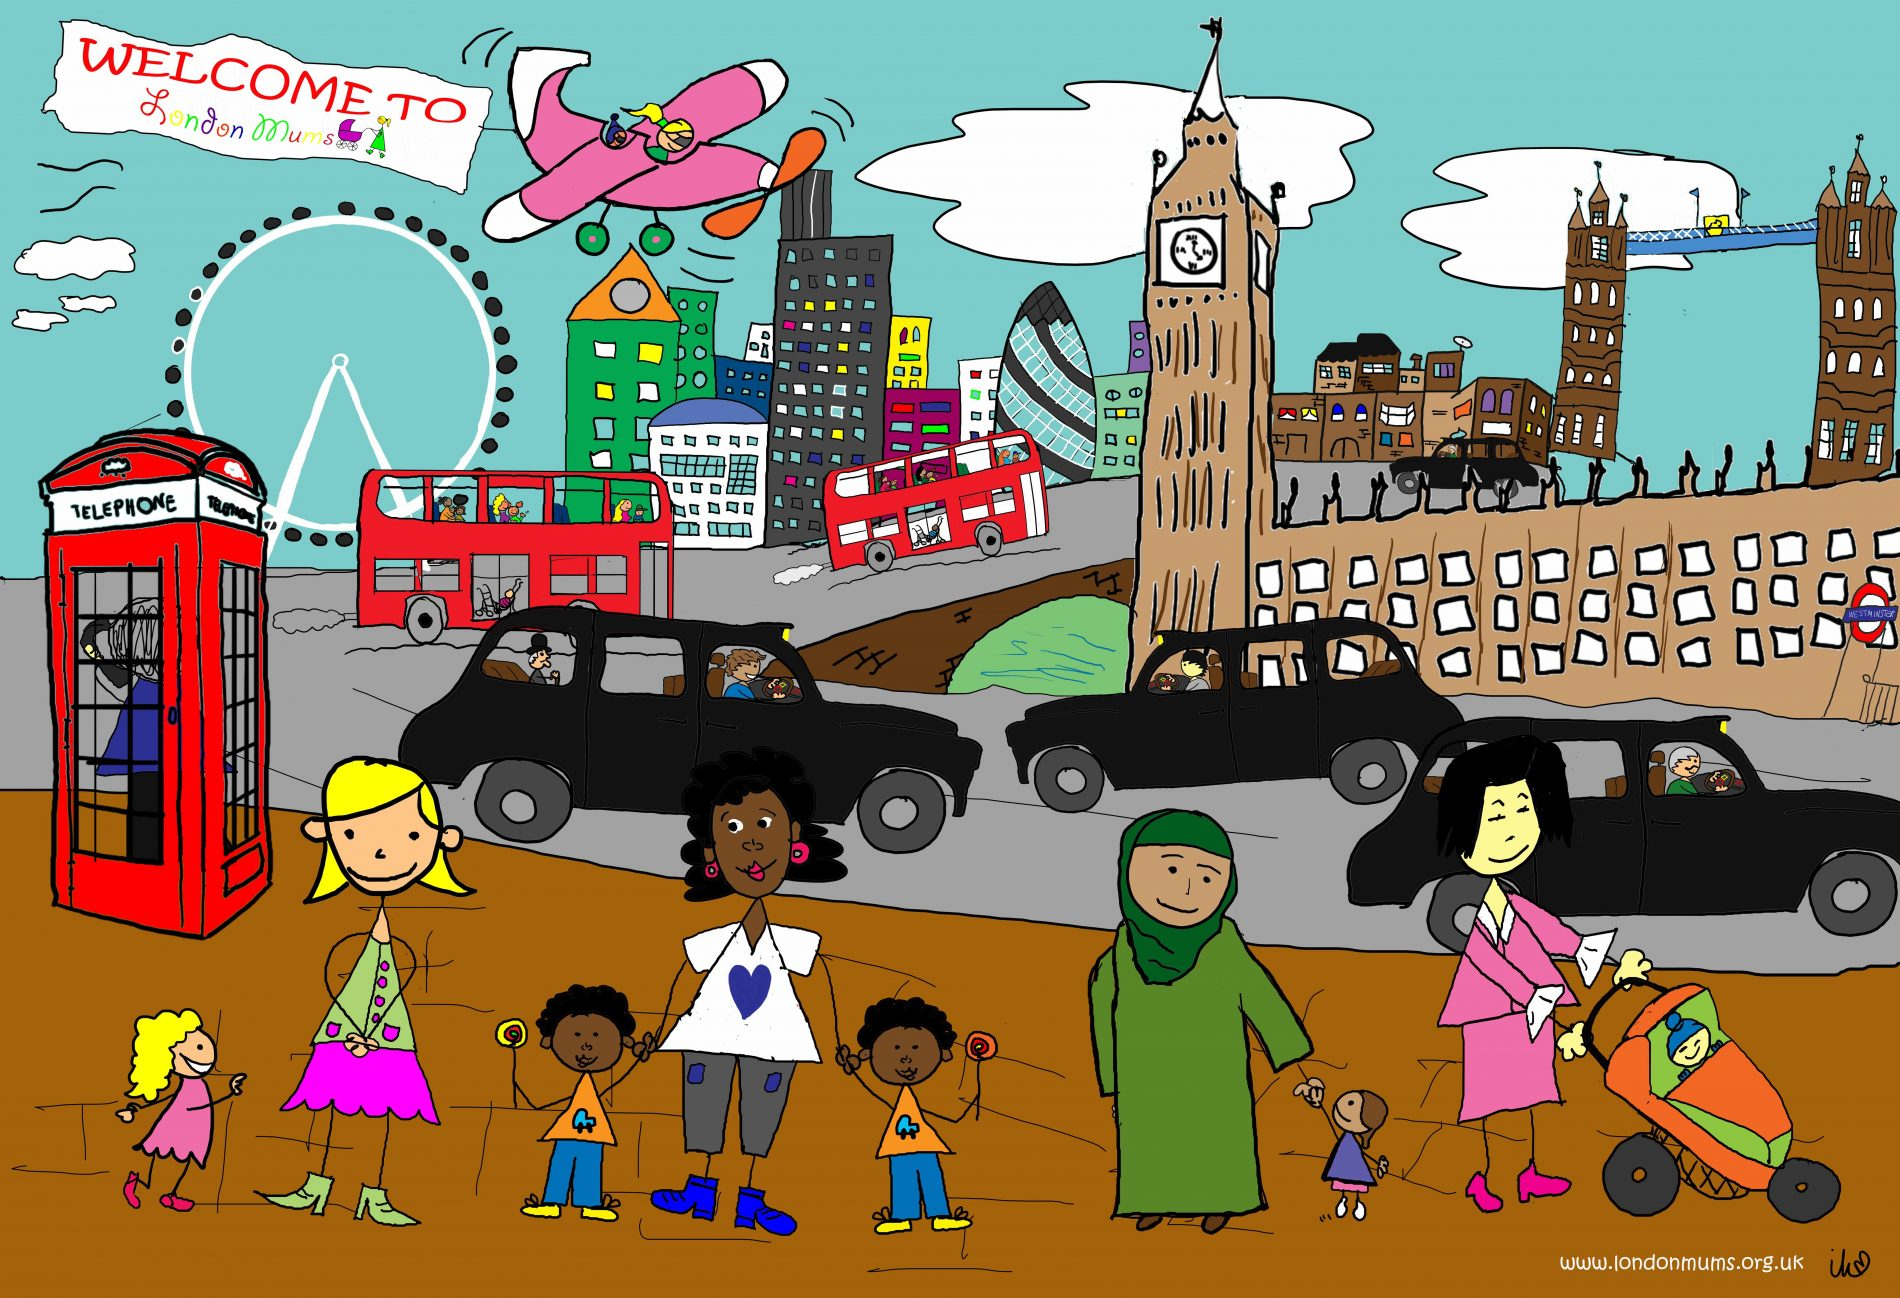 Testimonials from people who LOVE London Mums